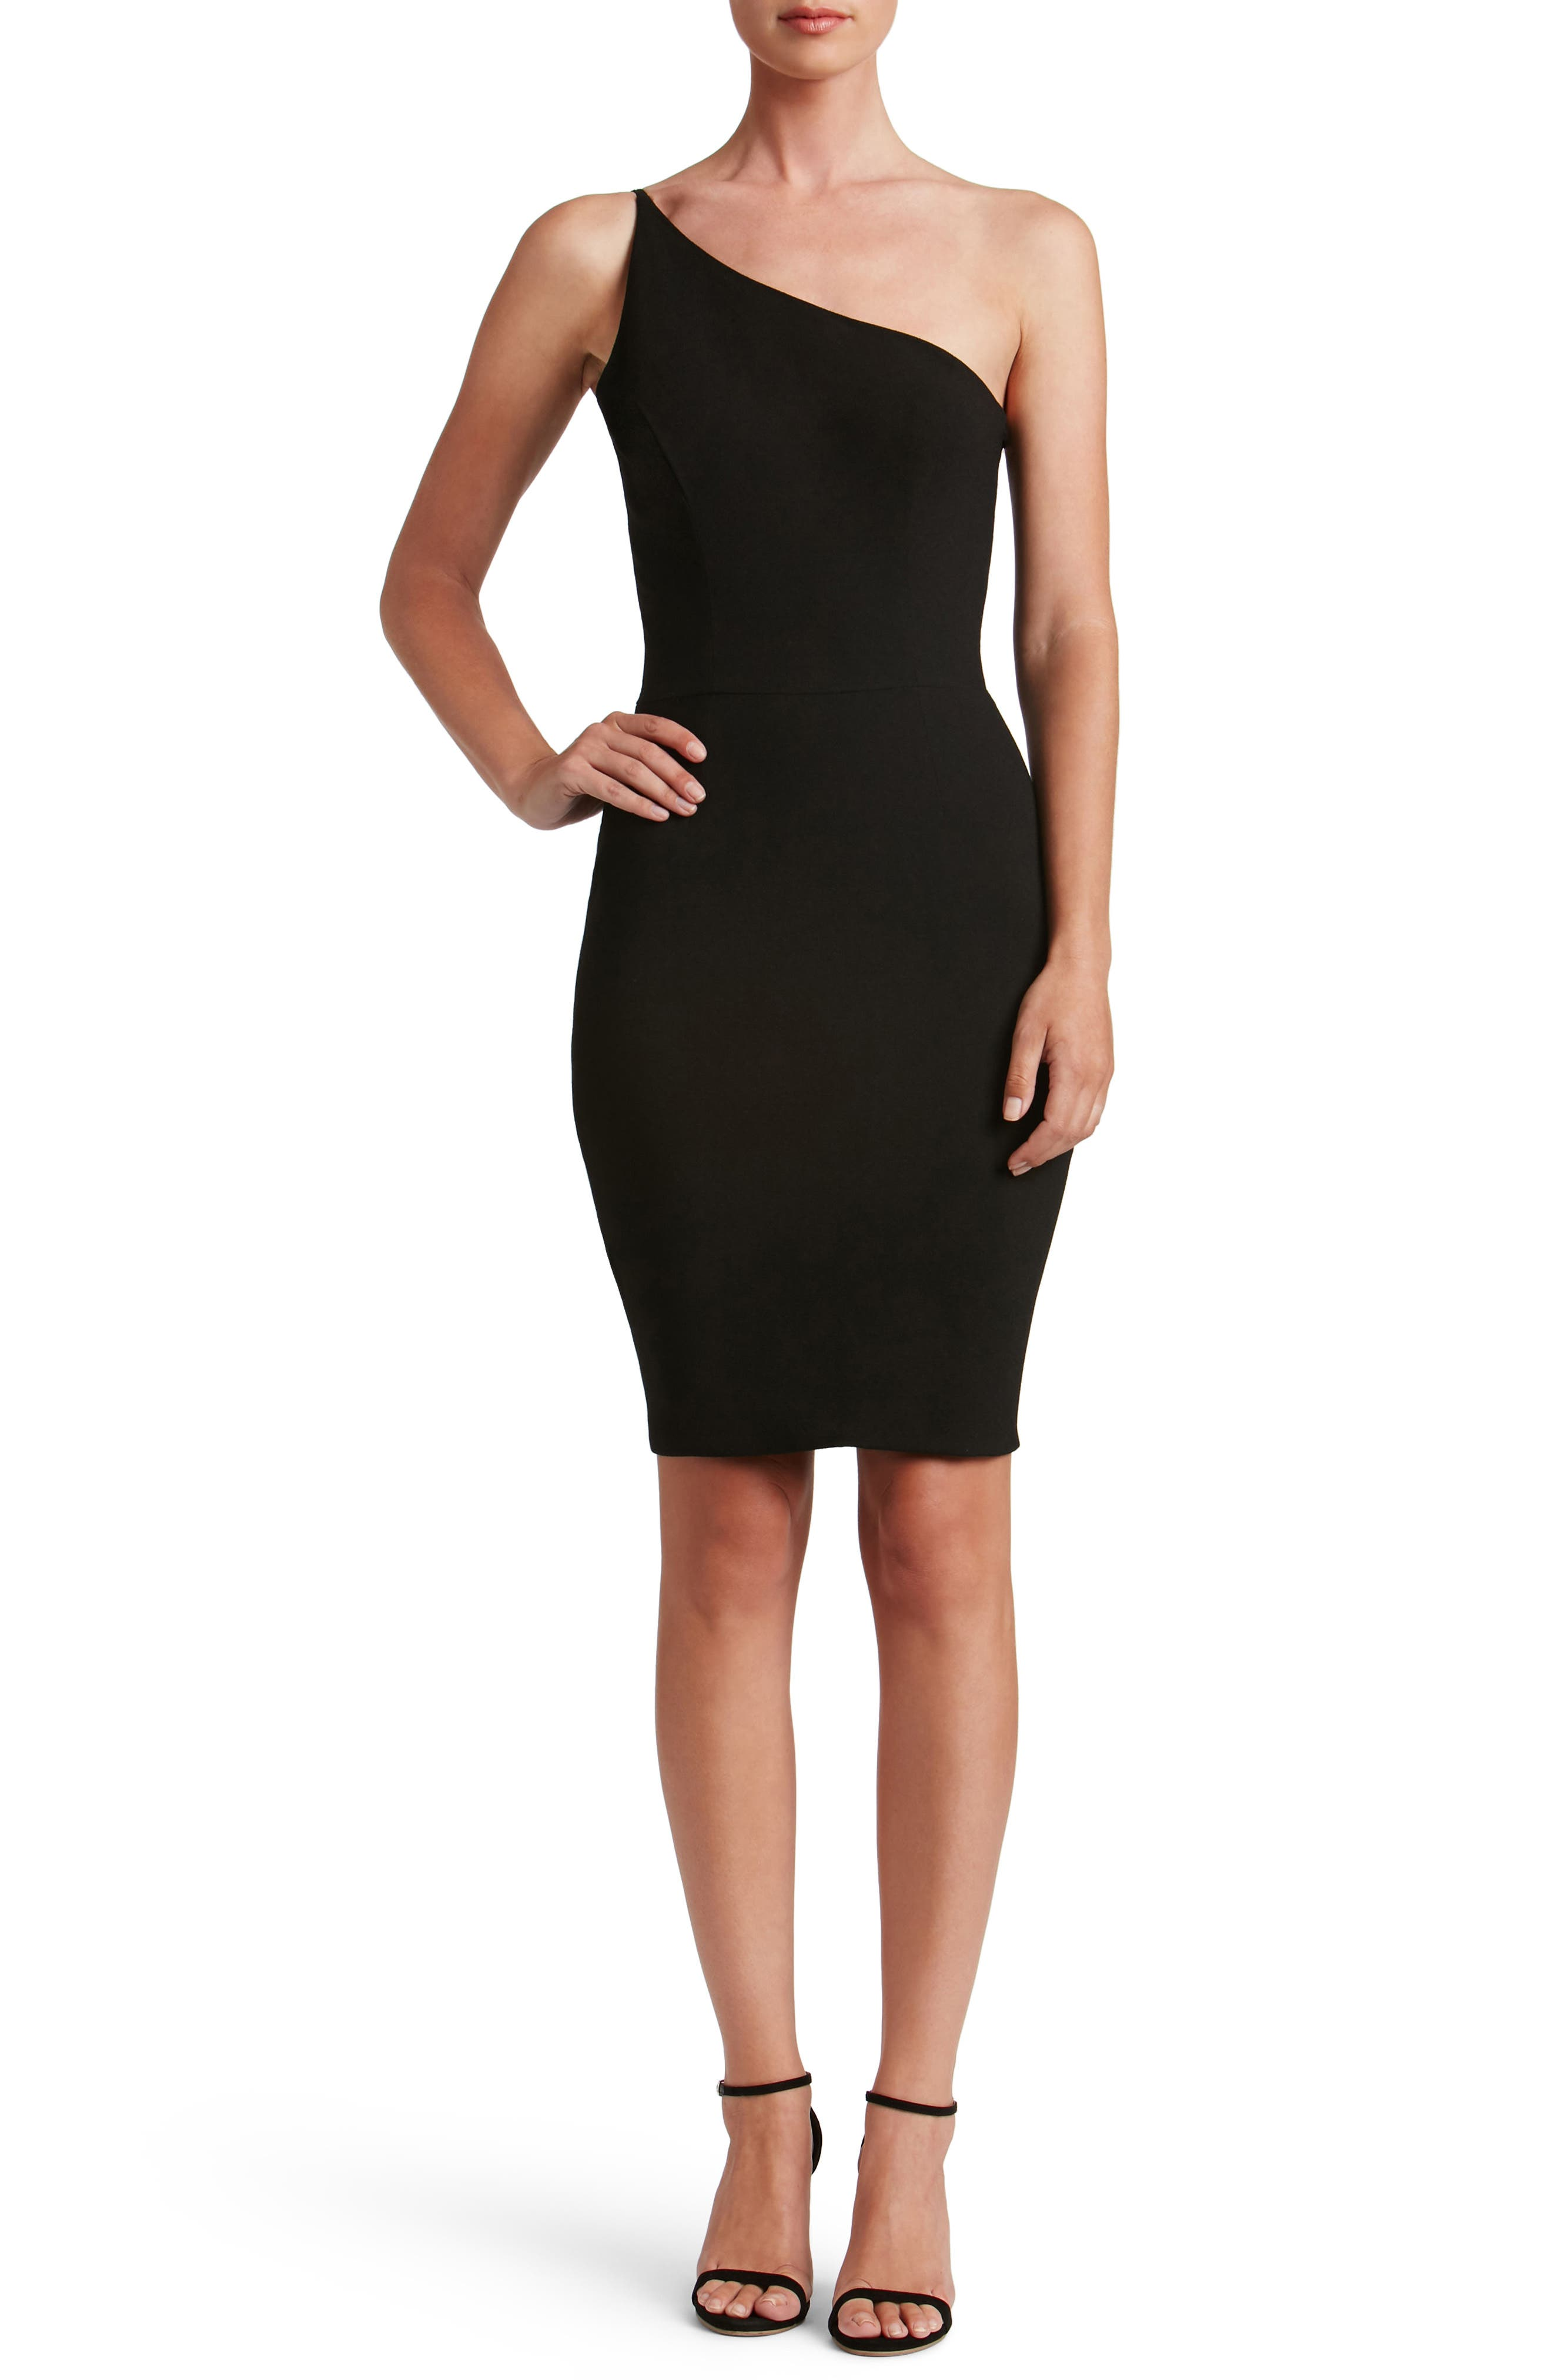 Jennifer One-Shoulder Body-Con Dress,                         Main,                         color, 001